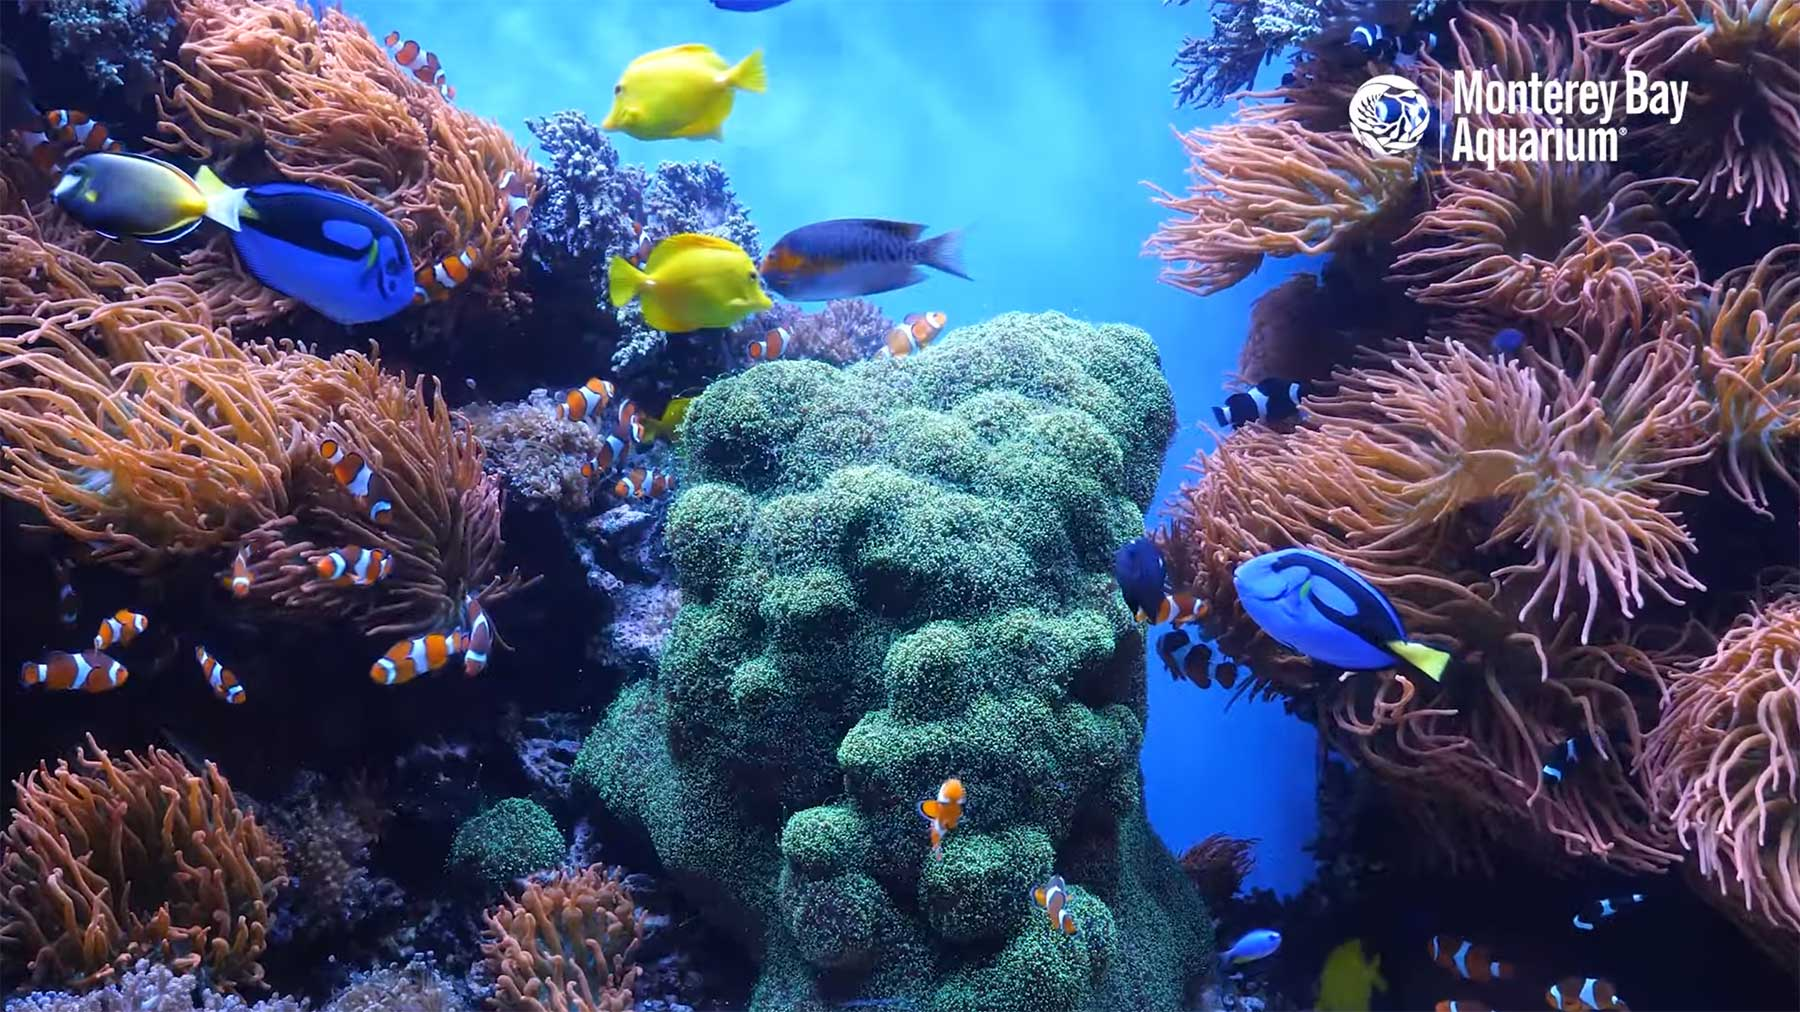 12 Stunden Aquarium mit tropischen Korallen-Fischen 12-Hours-Of-Tropical-Coral-Reef-Fishes-At-Monterey-Bay-Aquarium